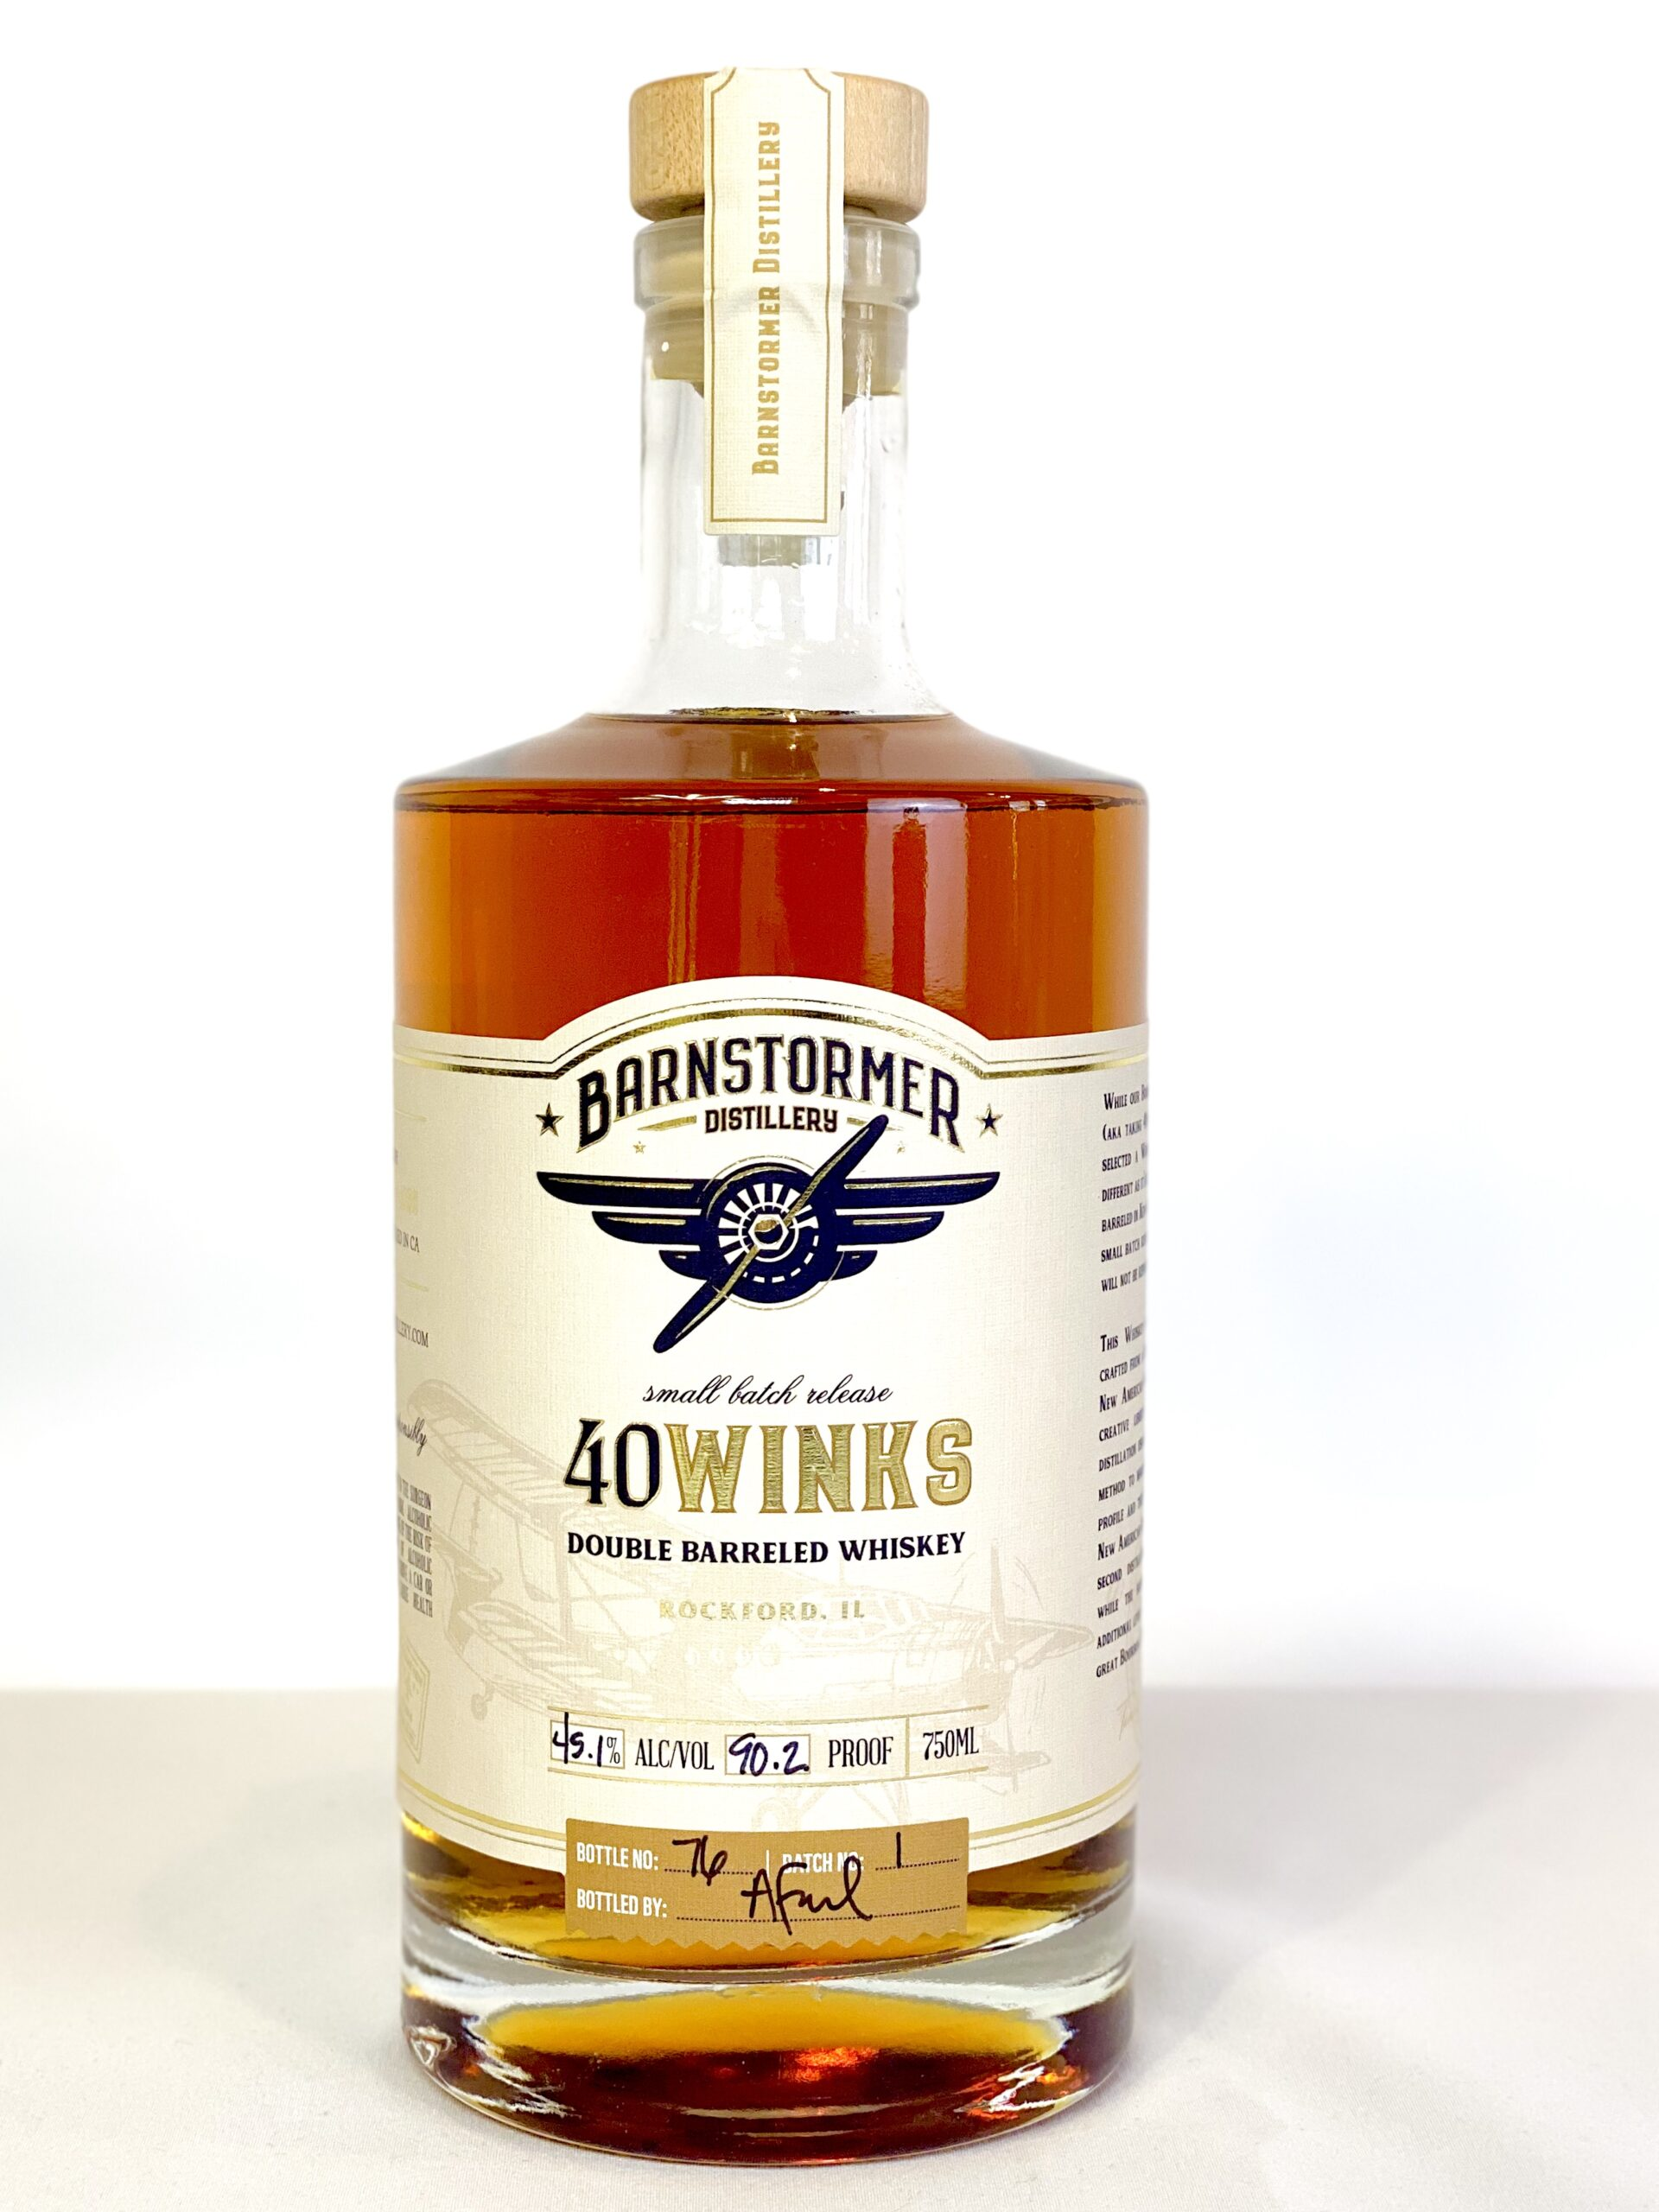 Barnstormer 40 Winks Whiskey 90 Proof